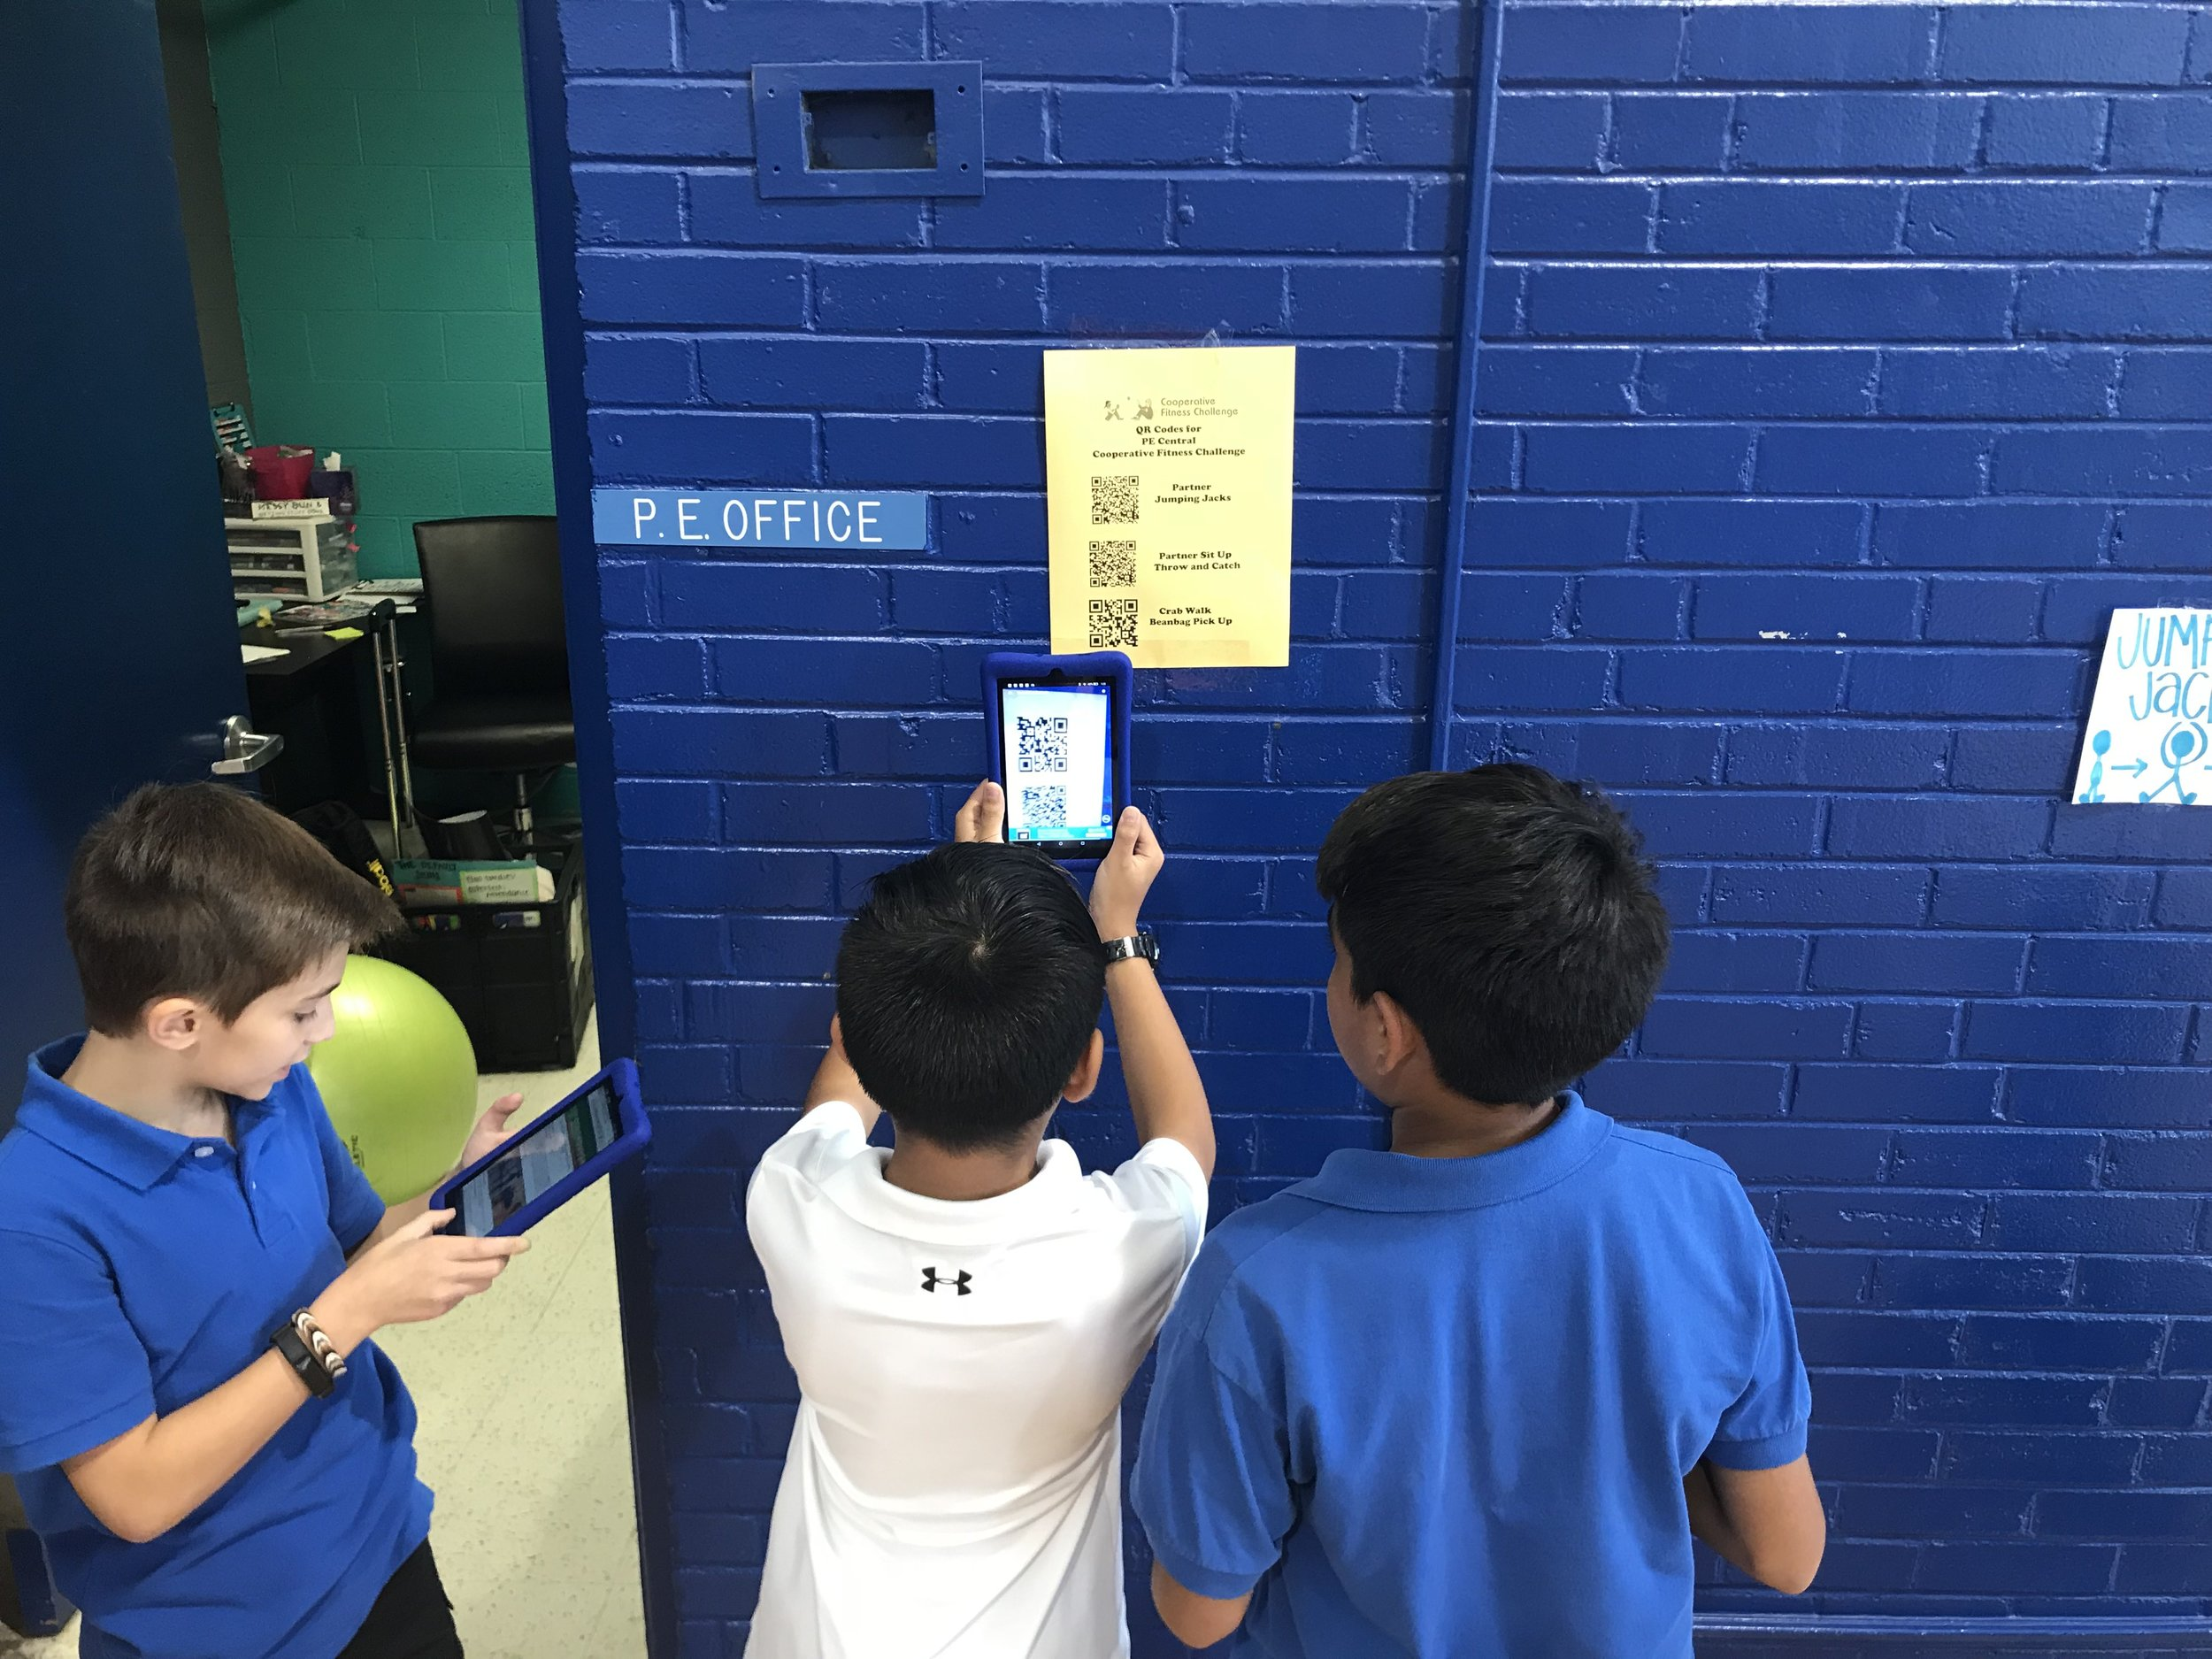 These students are using their kindles in the gym to find out what activity is next in their fitness challenge.